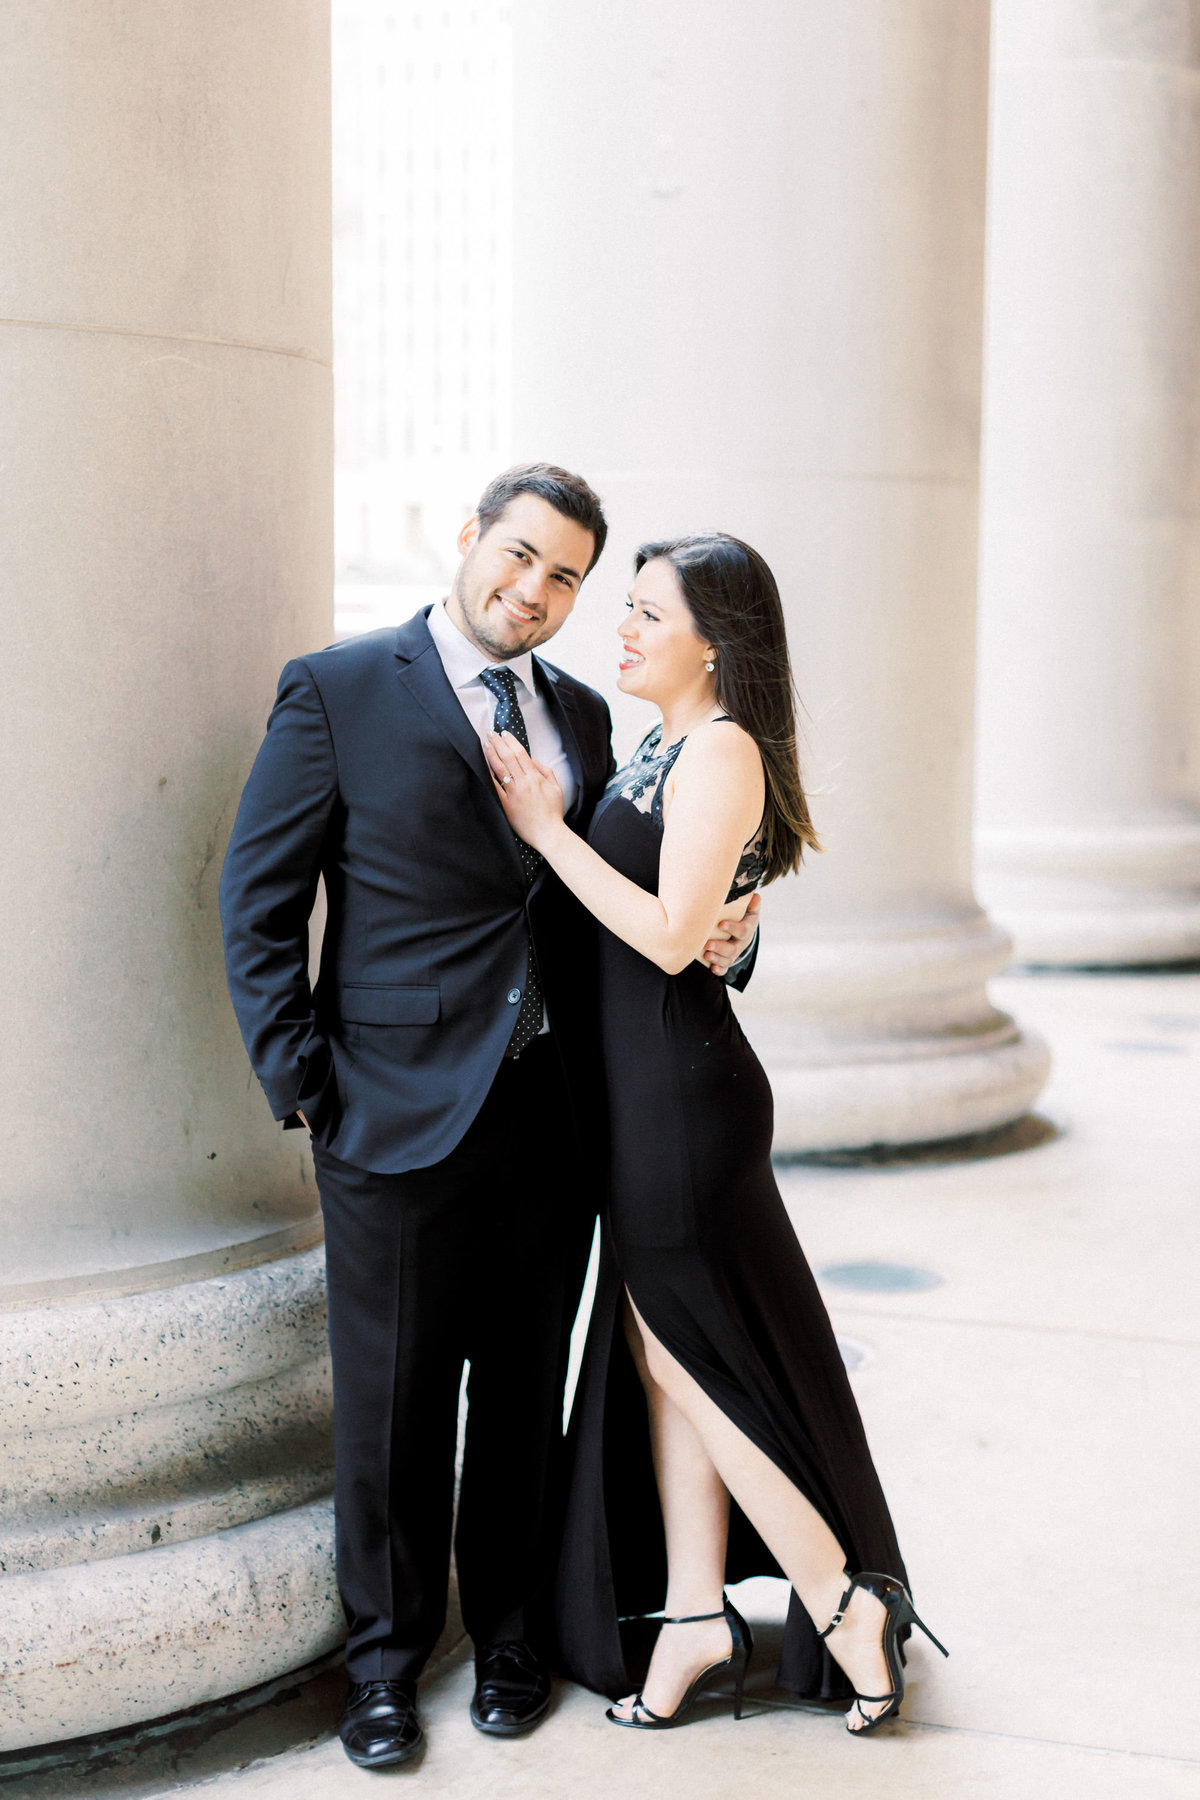 TiffaneyChildsPhotography-ChicagoWeddingPhotographer-Alana+Giancarlo-NorthAvenueBeachUnionStationEngagementSession-86